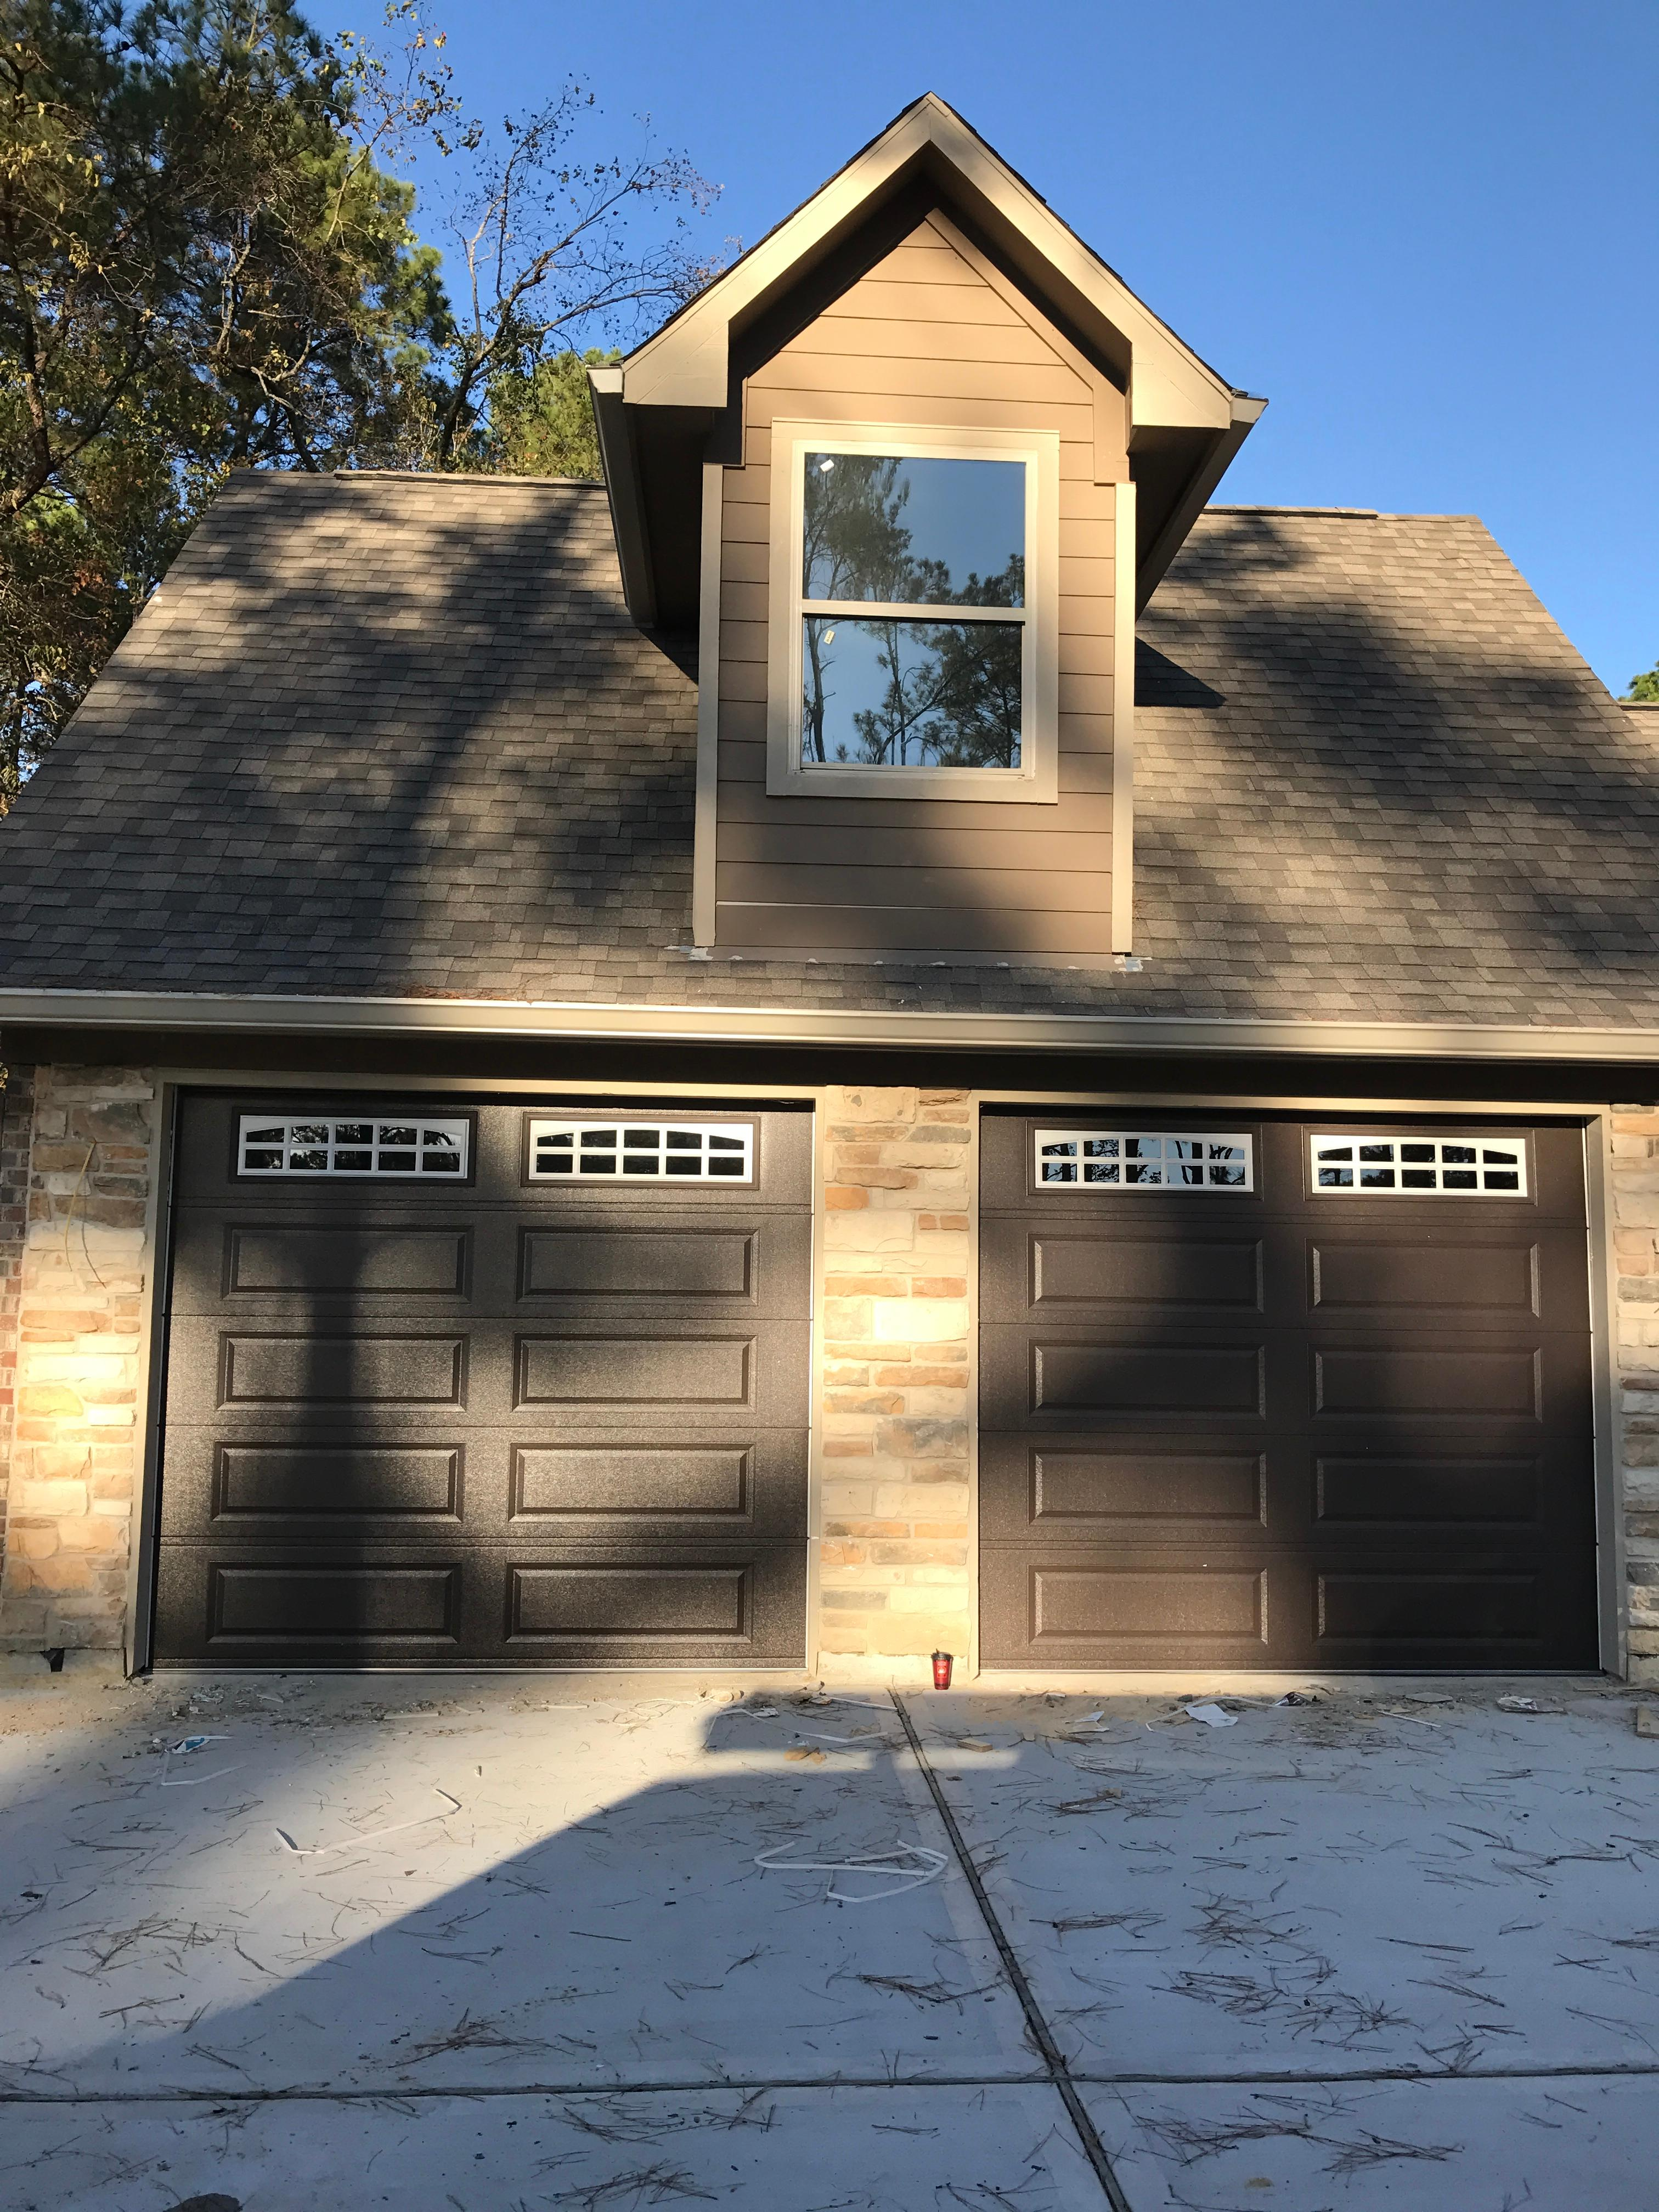 service austin garage repair mr garagedooraustinimage door tx